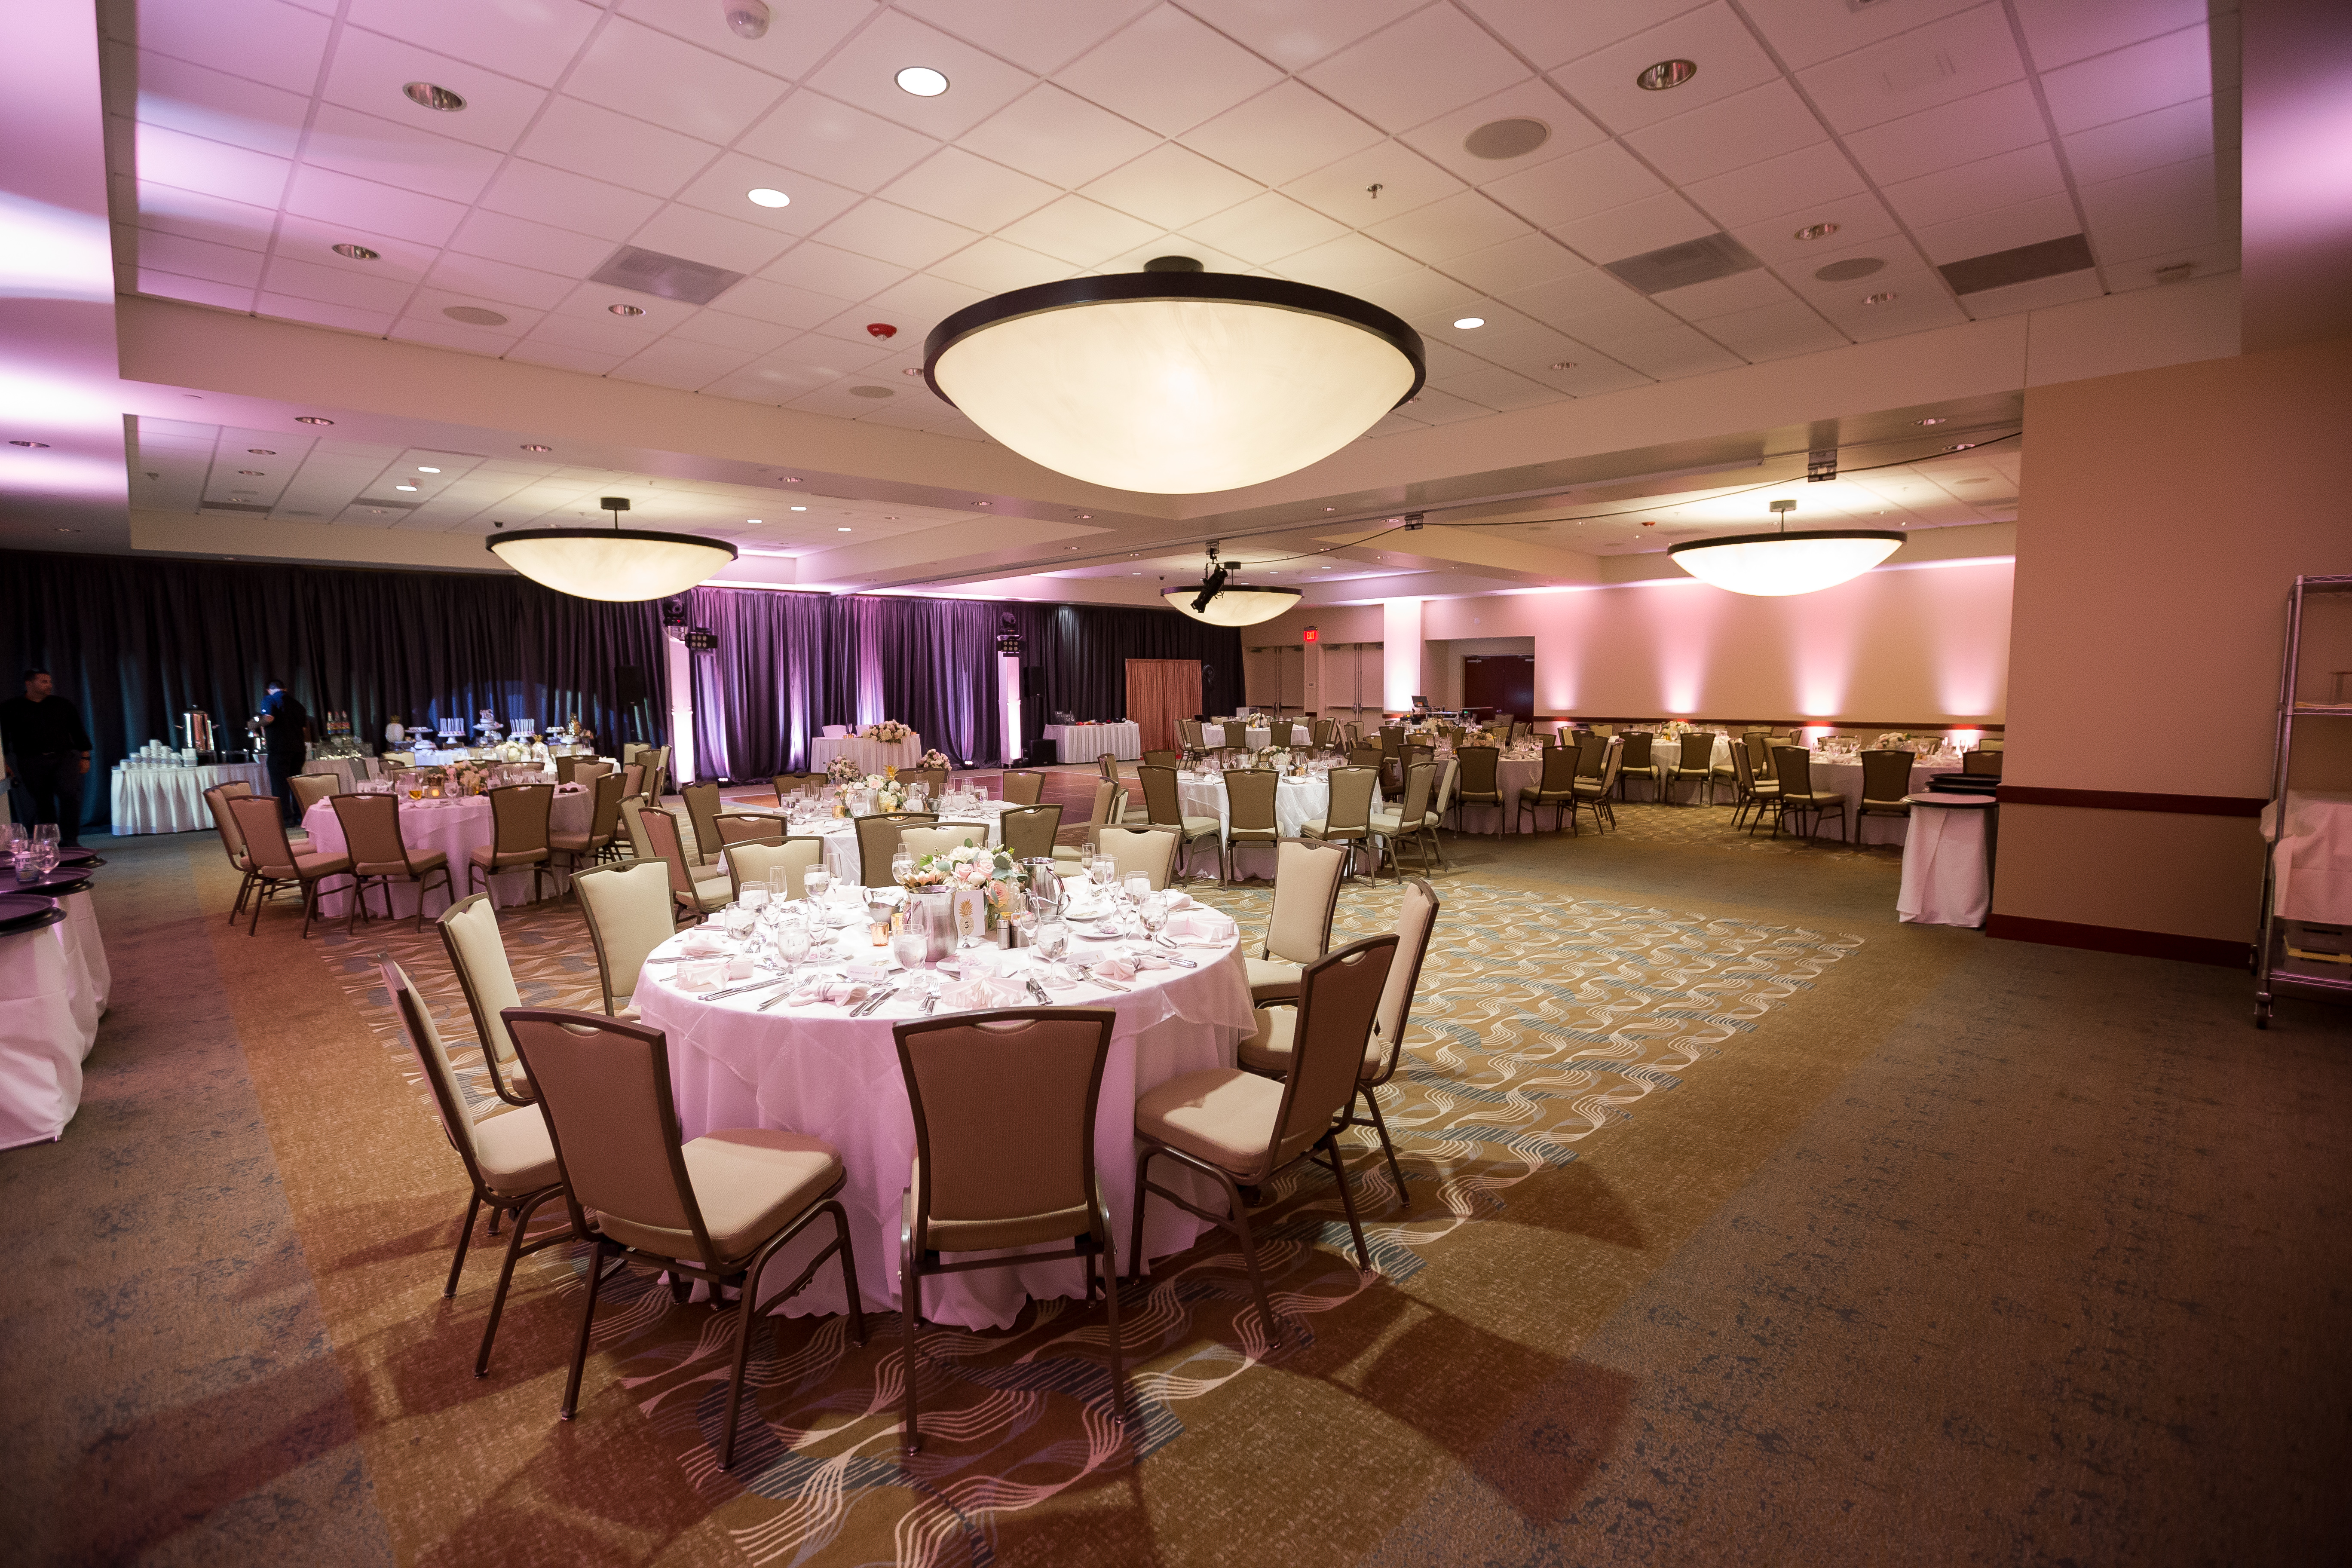 Meeting hall decorated for wedding reception